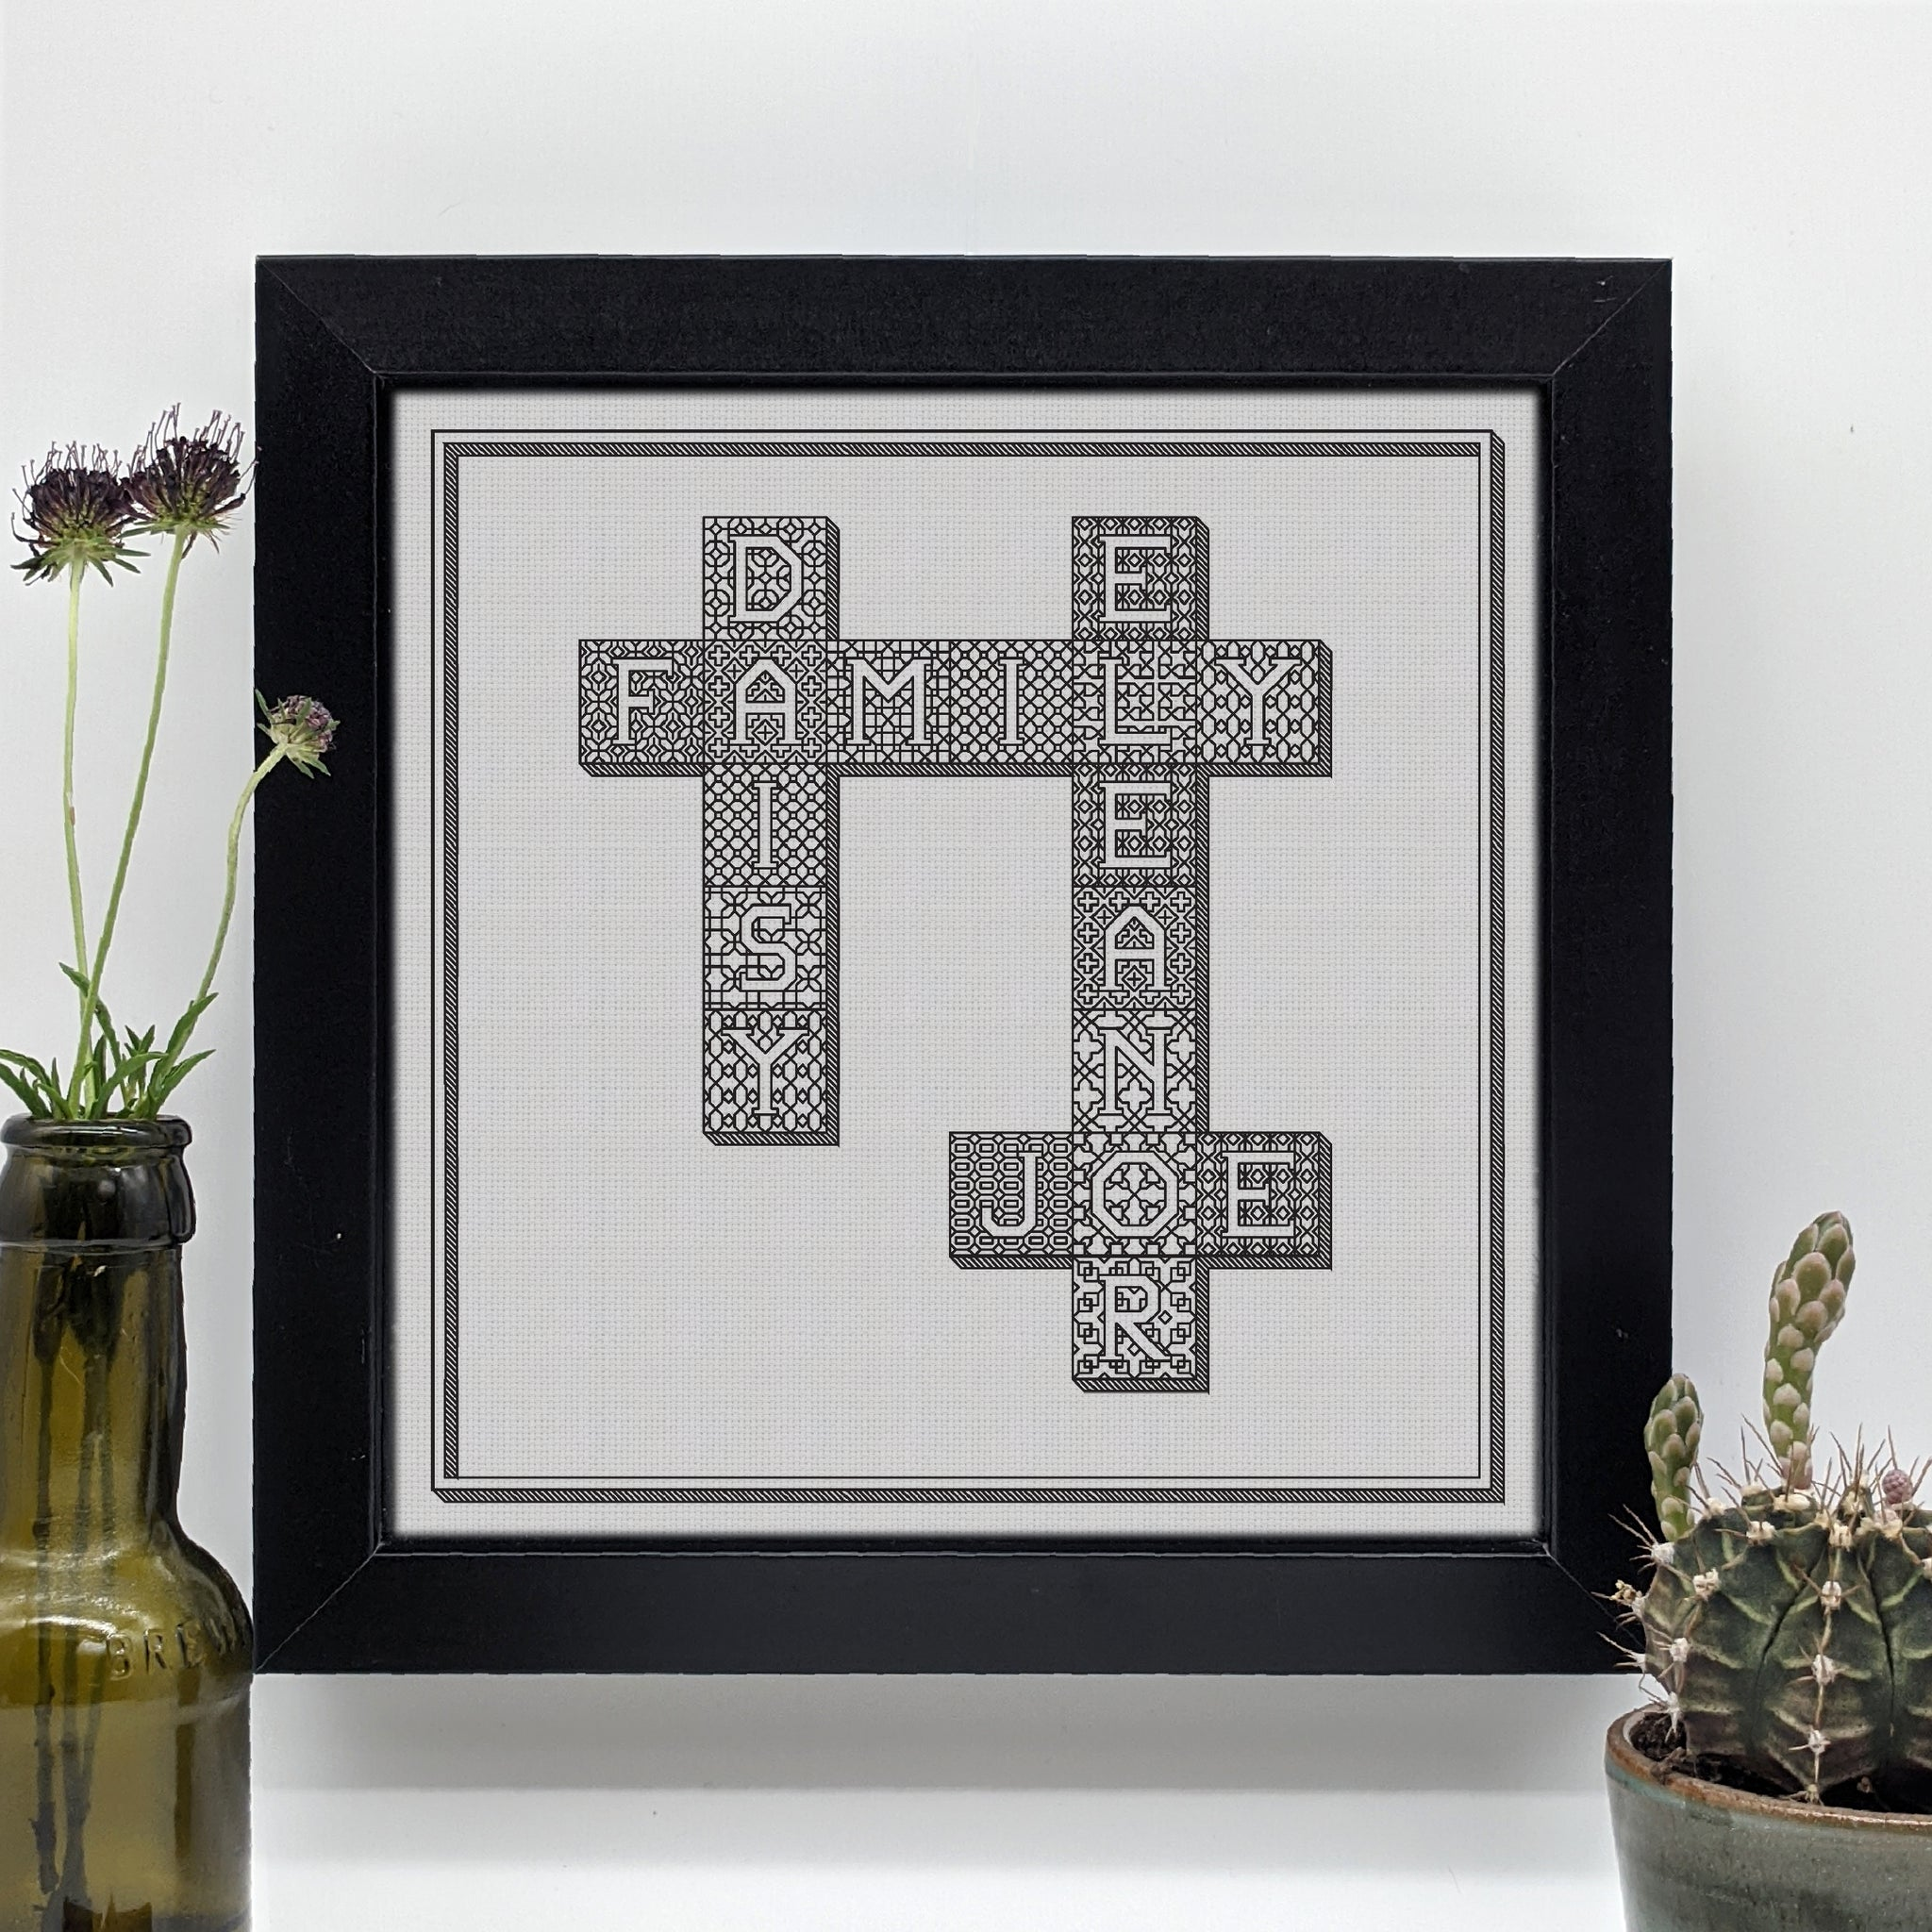 Blackwork scrabble tiles